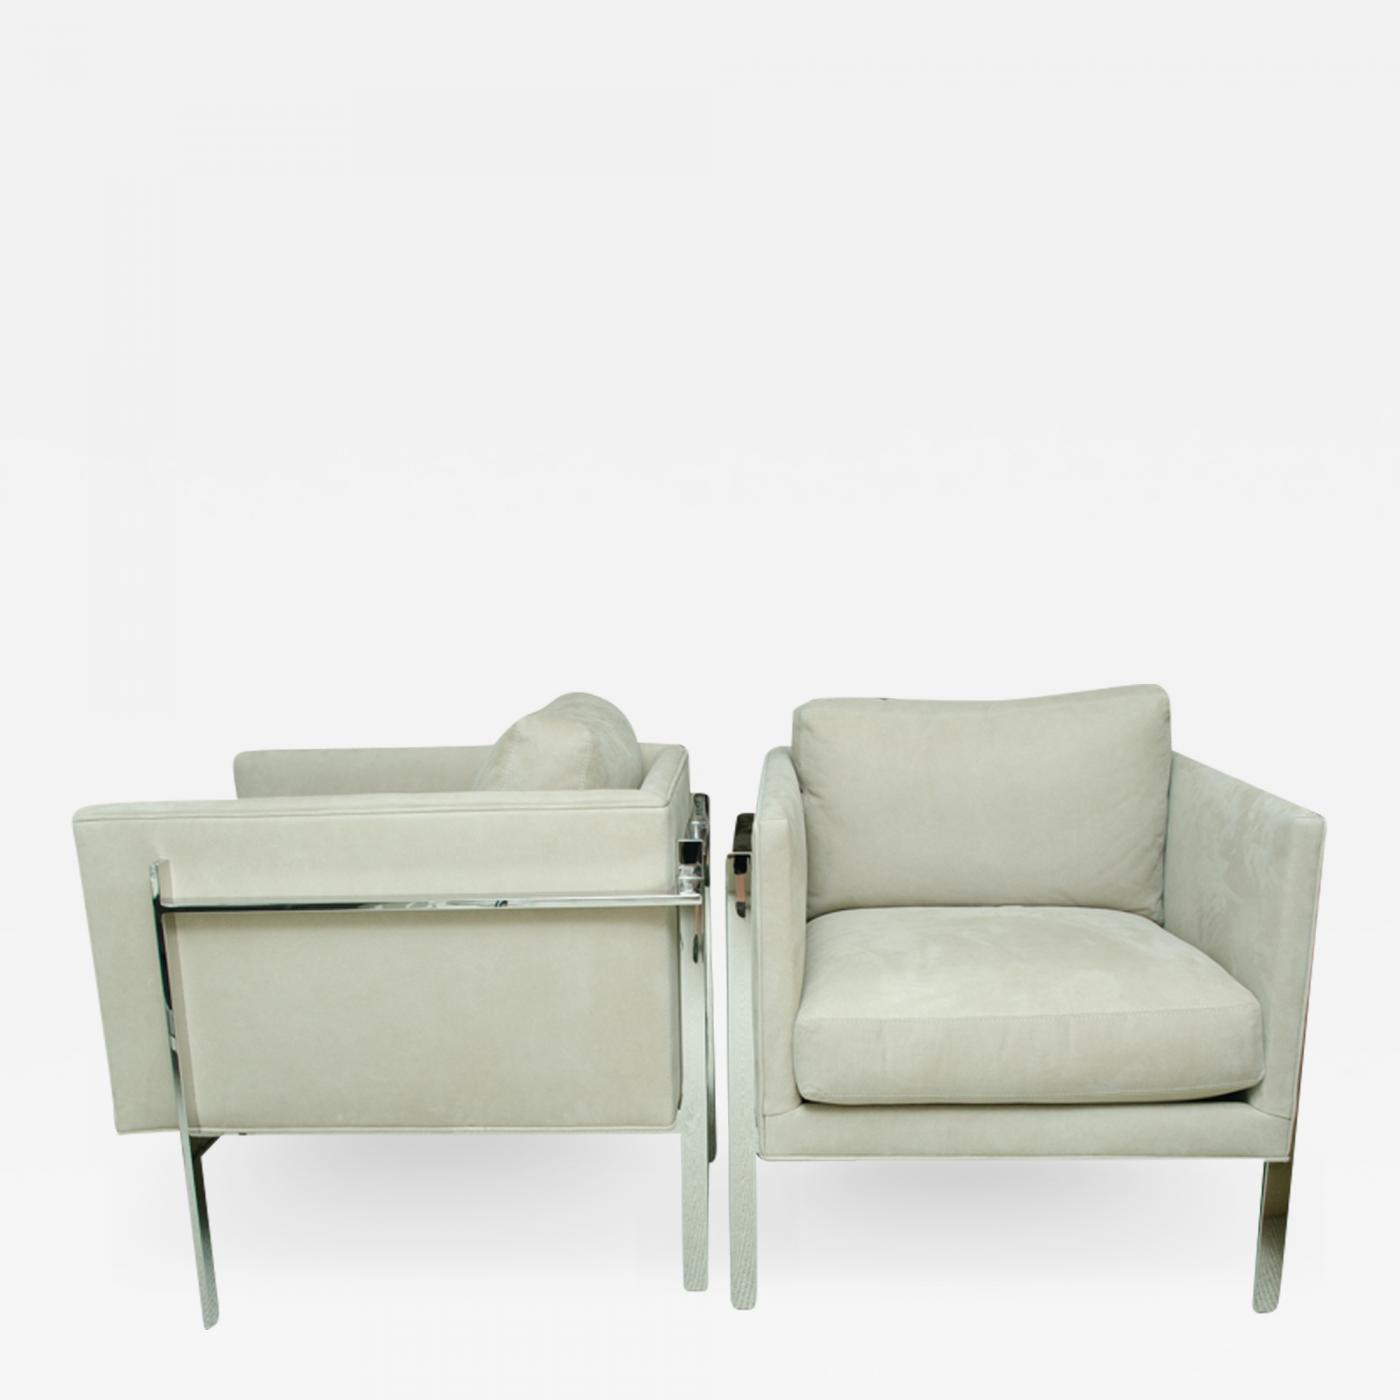 Milo Baughman - Pair of Milo Baughman Chrome Arm Chairs with Leather Suede  Upholstery